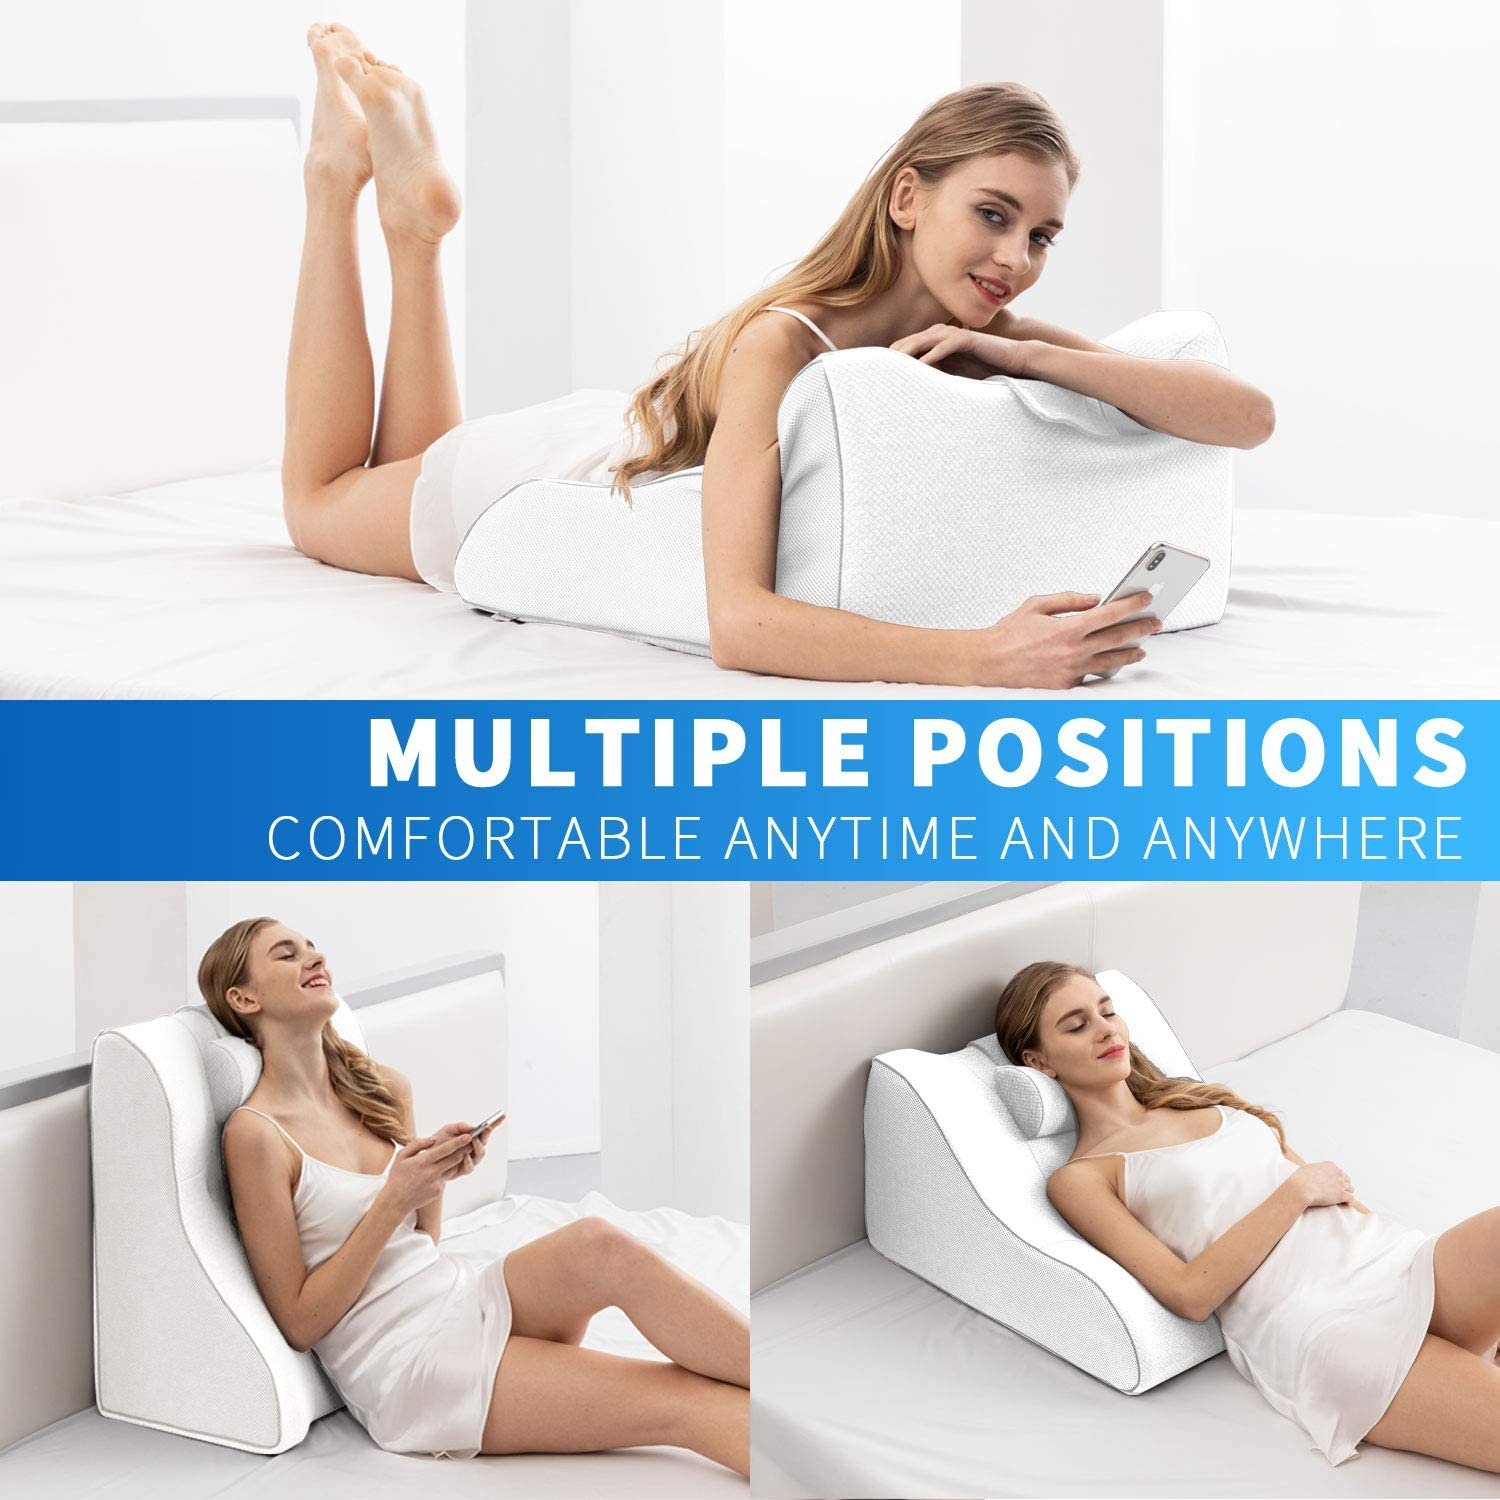 Pregnant Snoring 2 in 1 Back Support Cushion for Office Workers Elderly and More Orthopedic Incline Pillow for Relieving Lower Back Pain TESENAI Memory Foam Wedge Pillow Acid Reflux